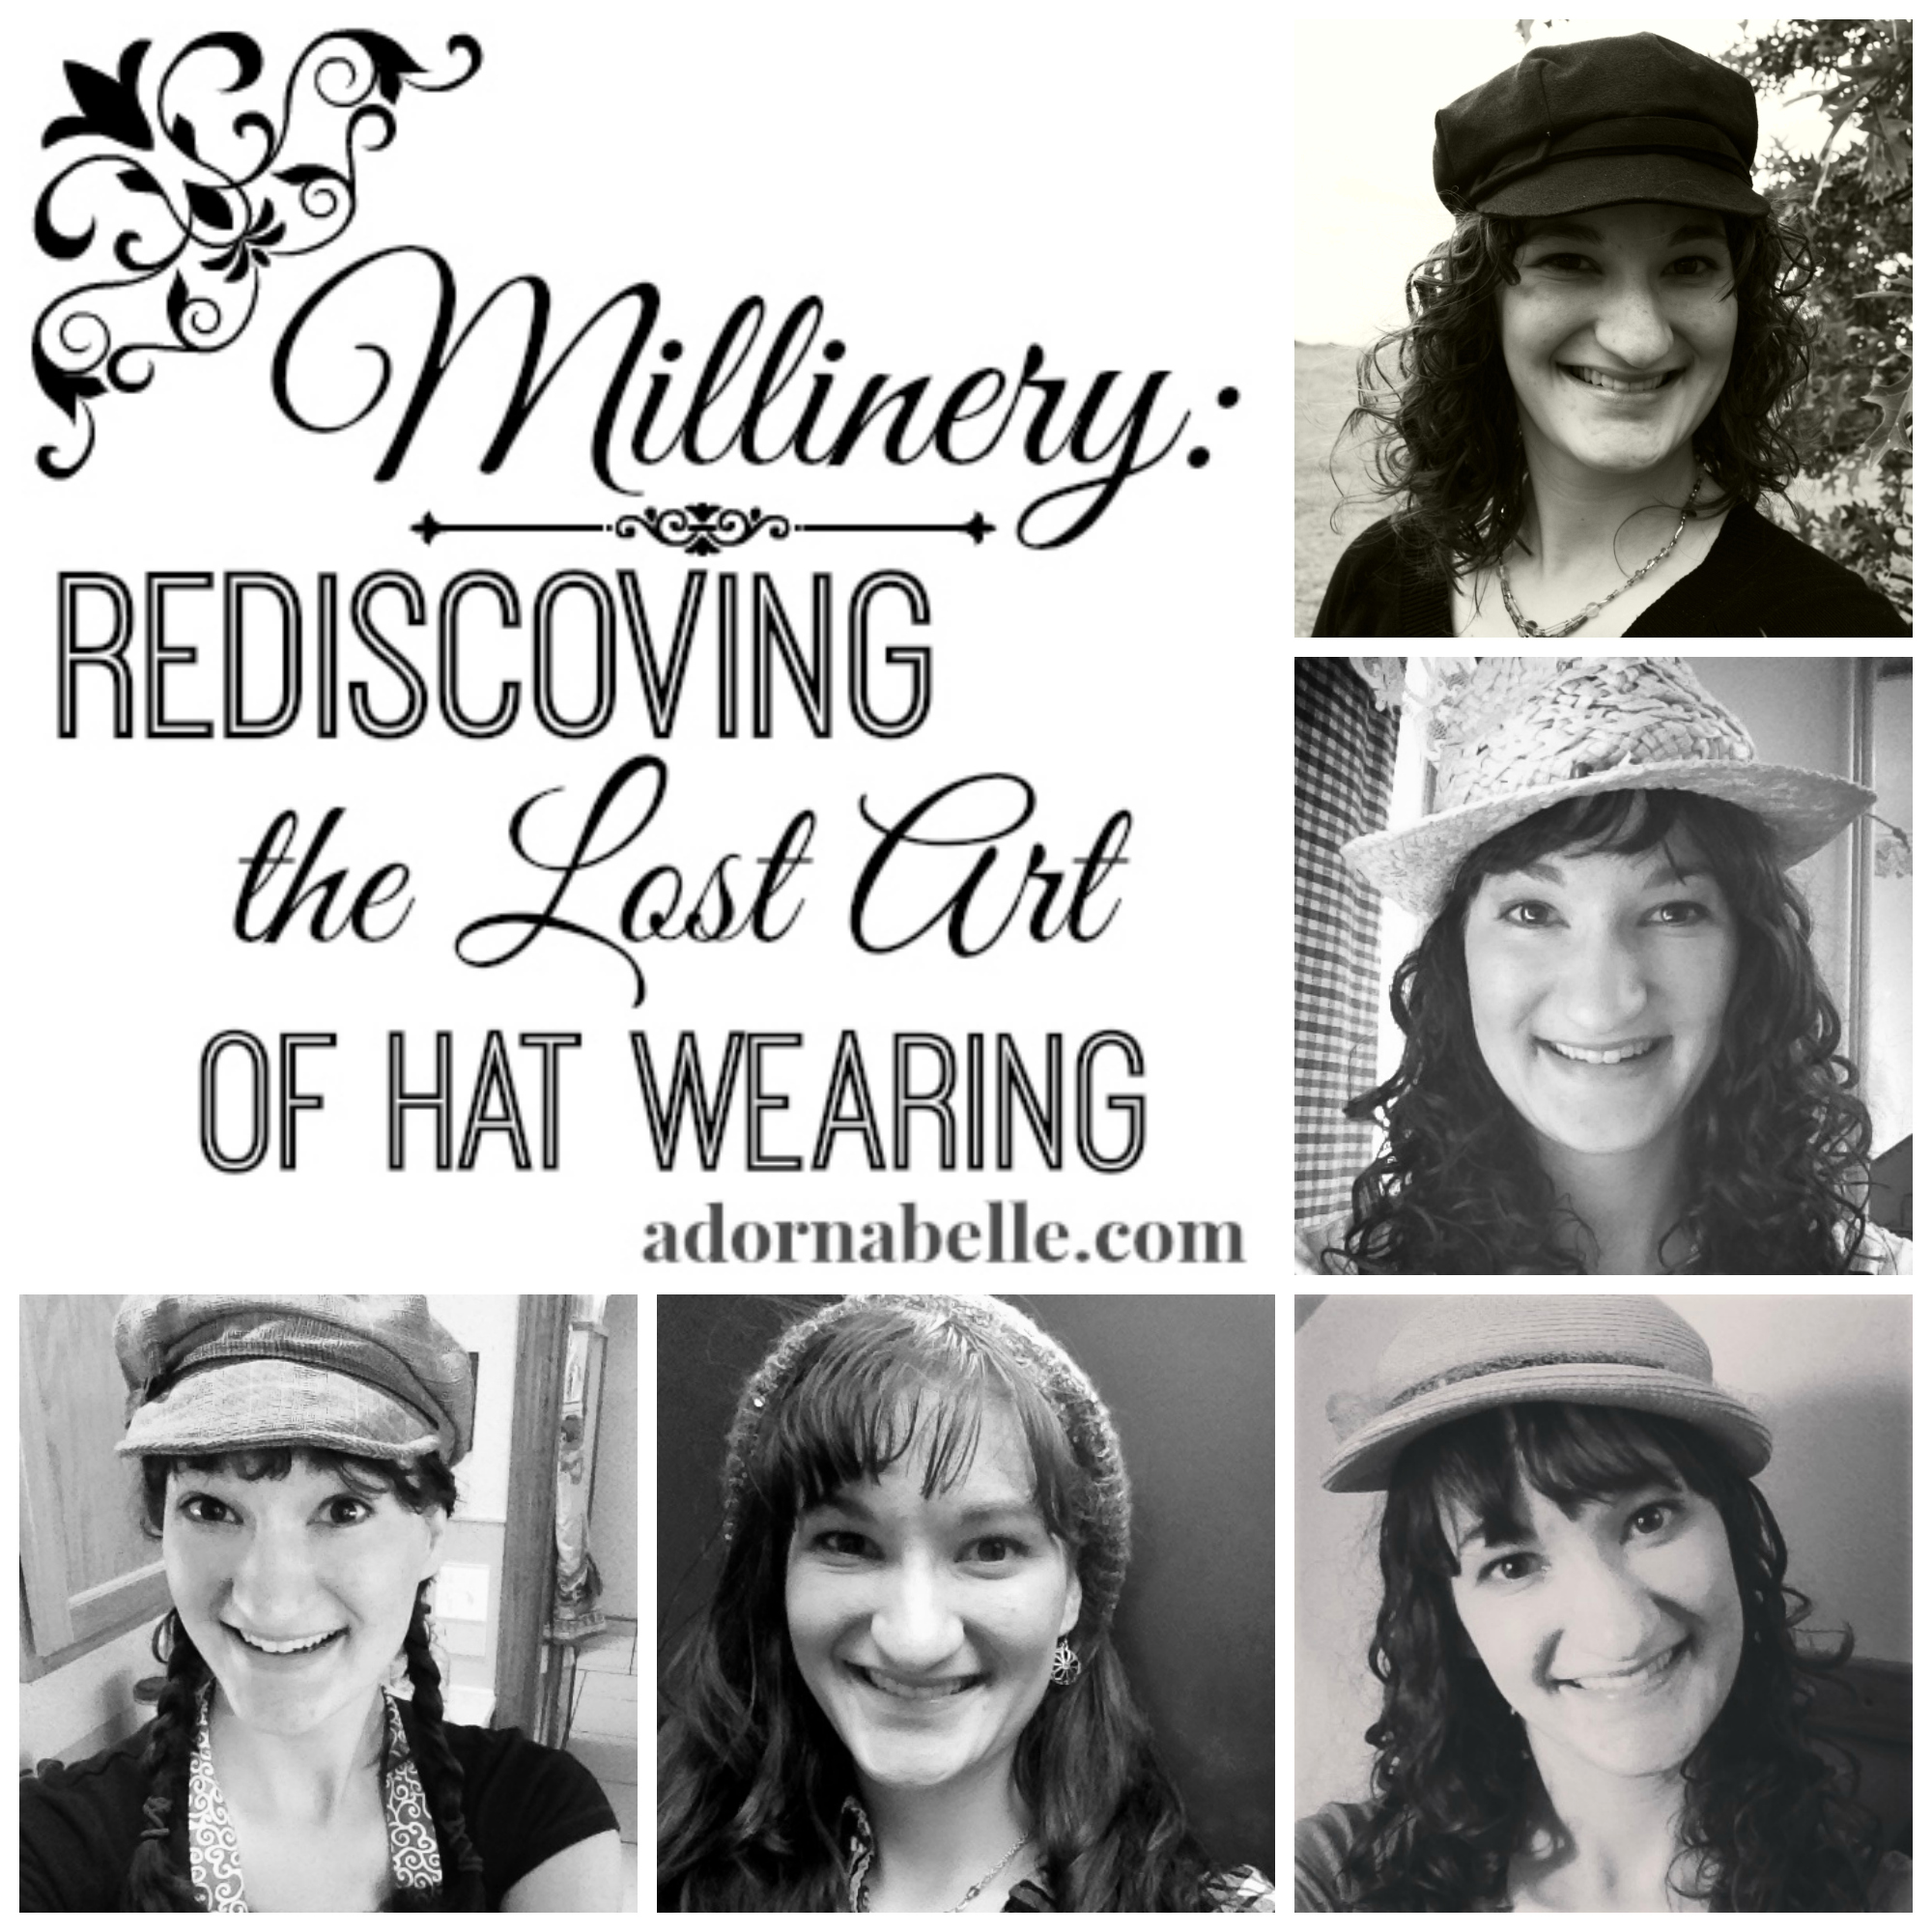 Millinery: Rediscoving the Lost Art of Hat Wearing